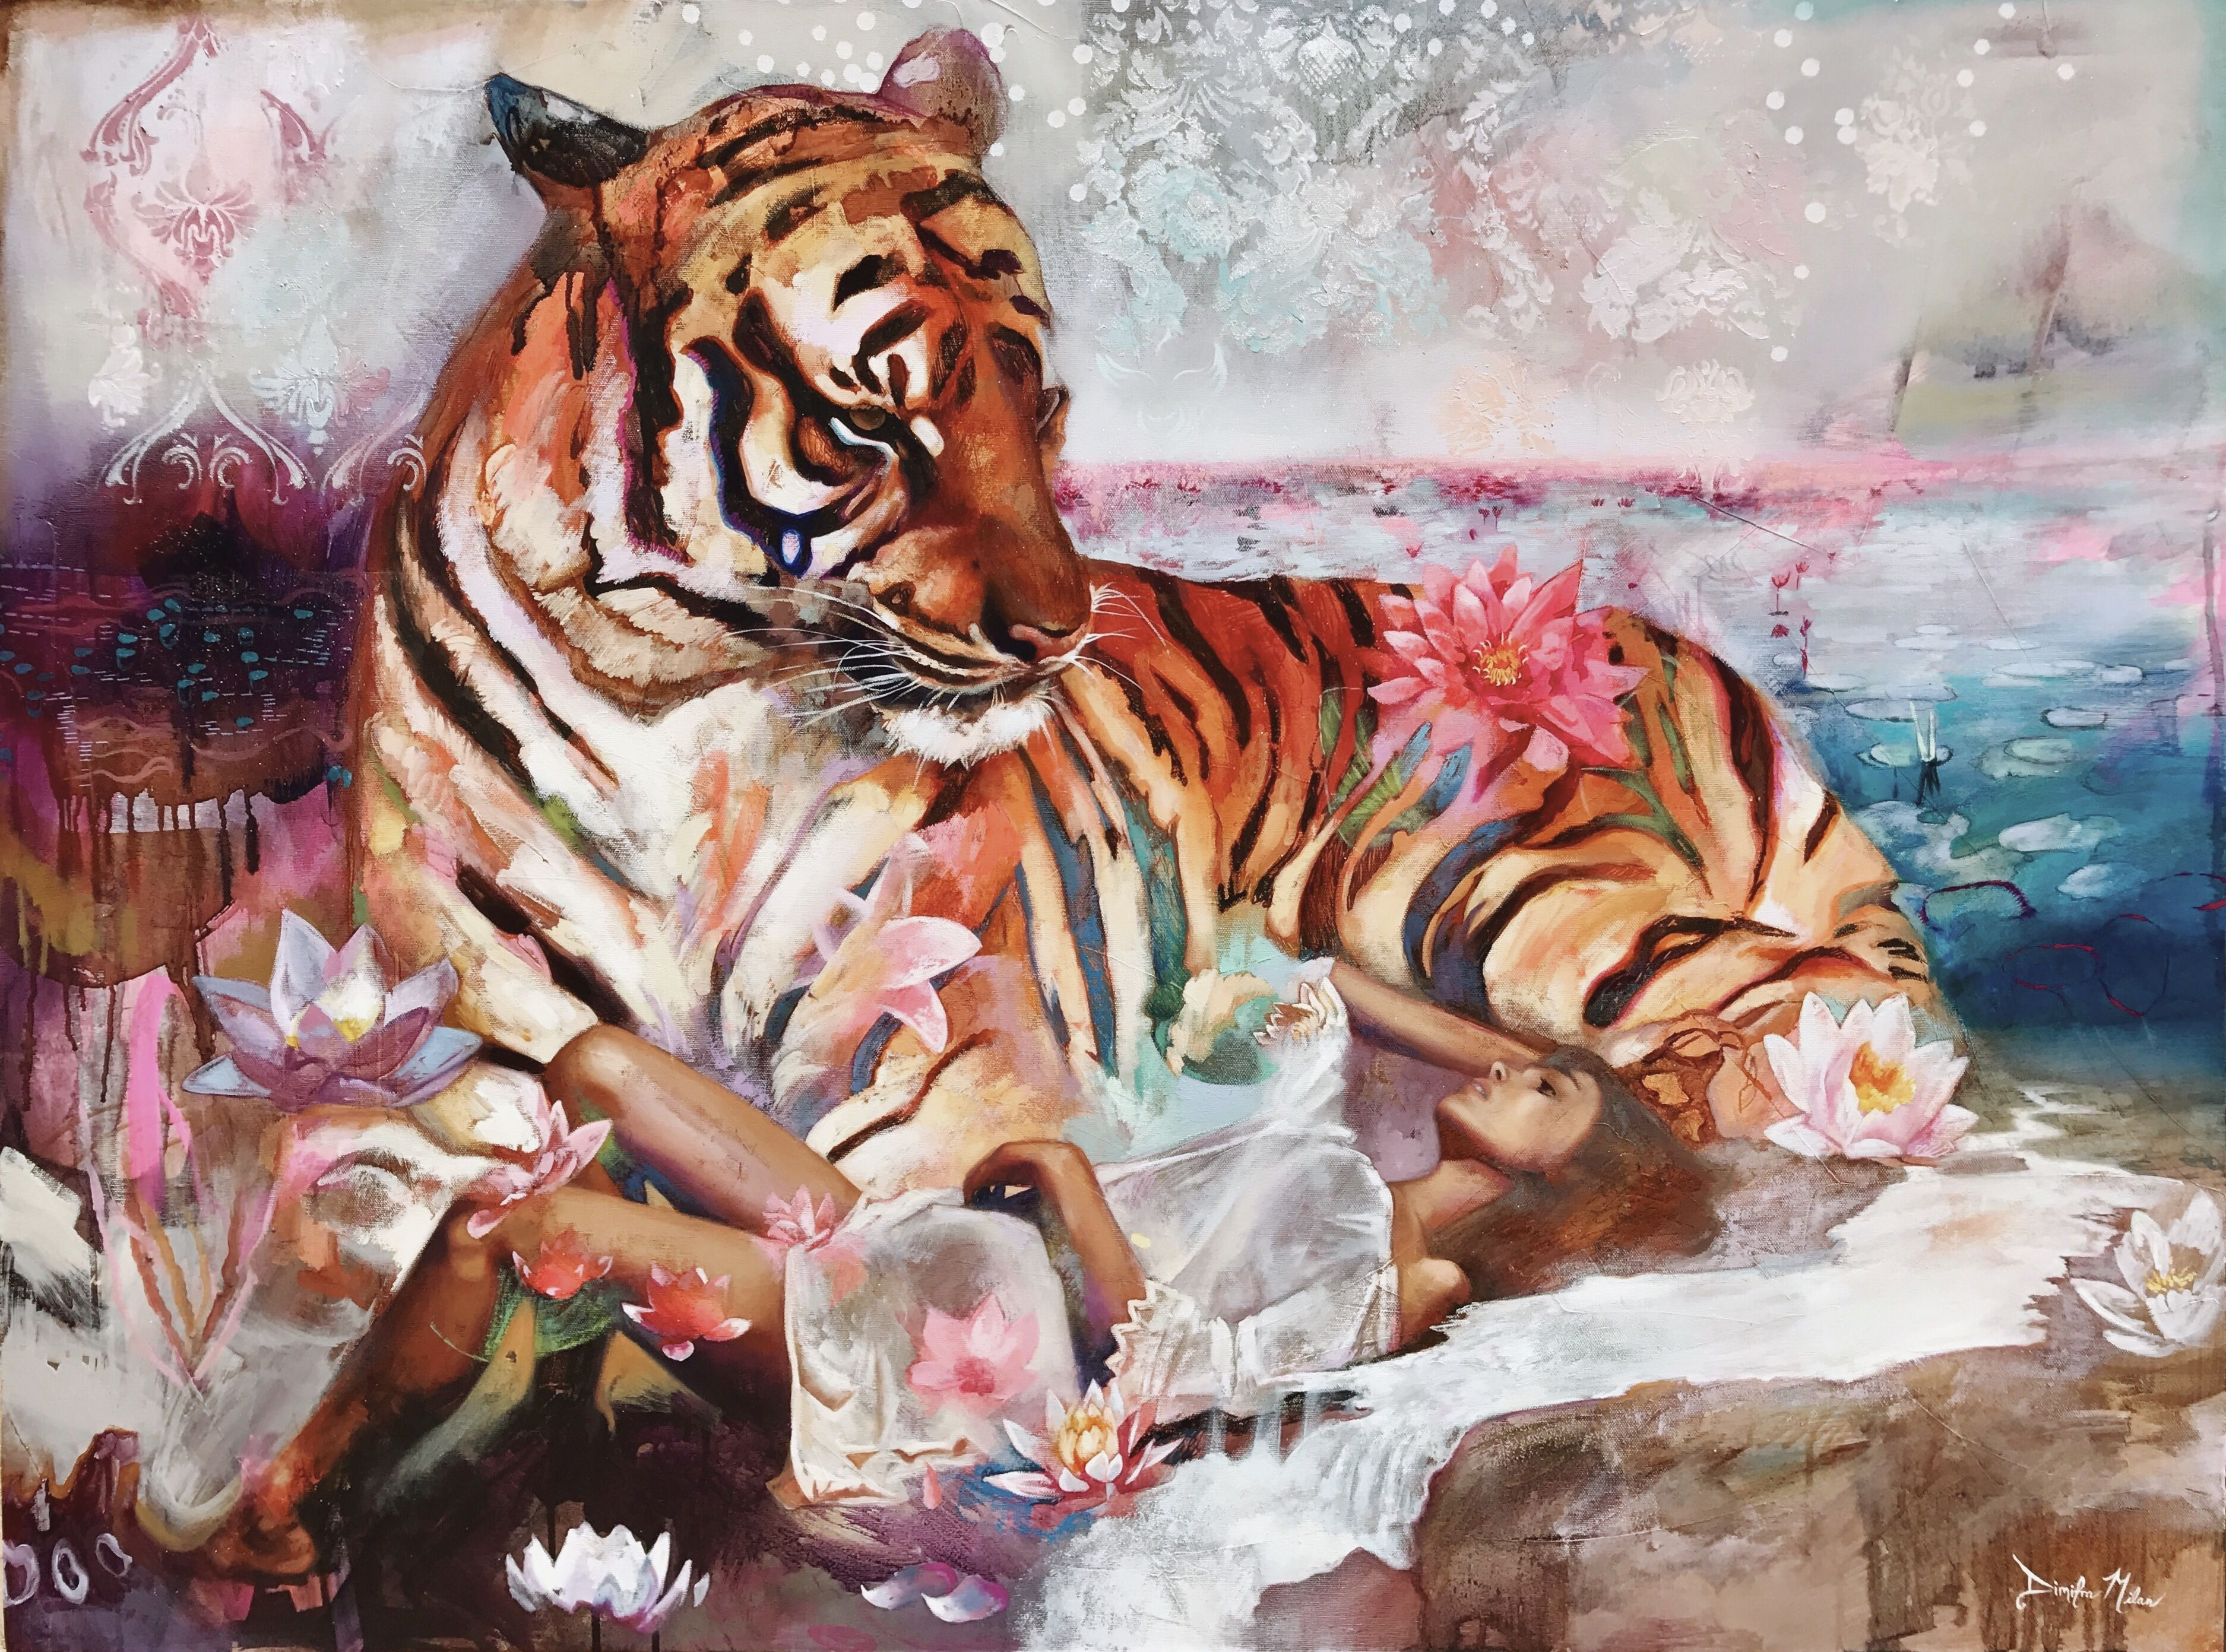 Erotic tigress oil paintings